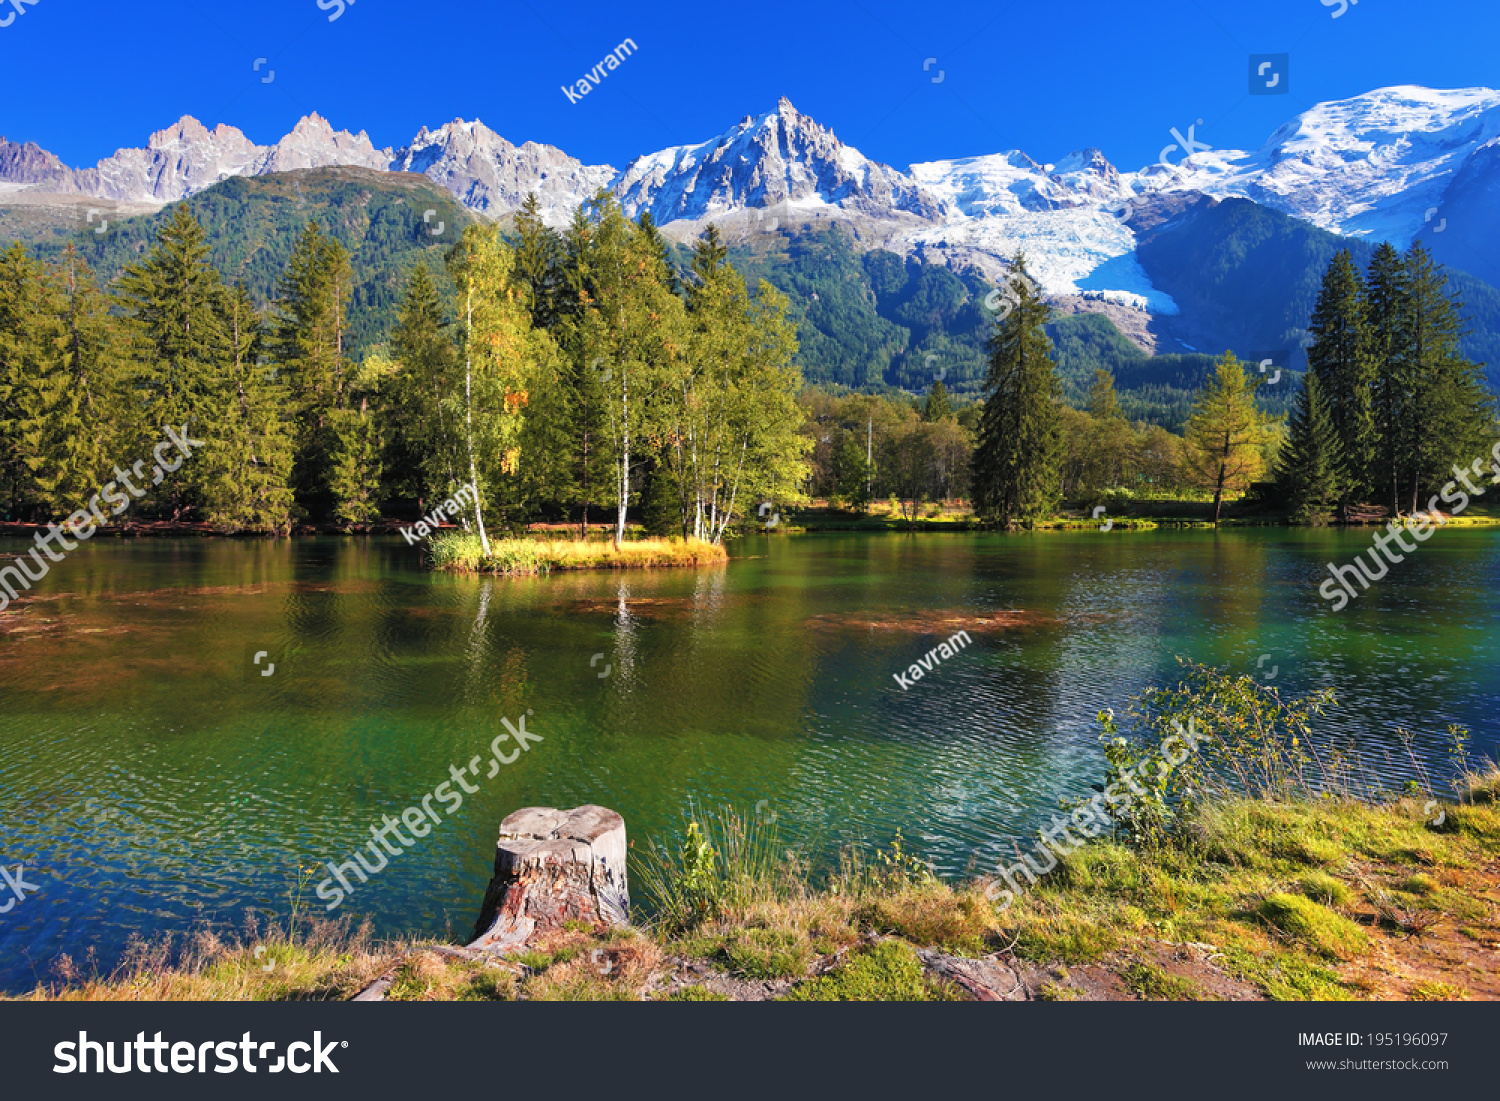 Lake cold water surrounded by trees stock photo 195196097 for The alpine lodge